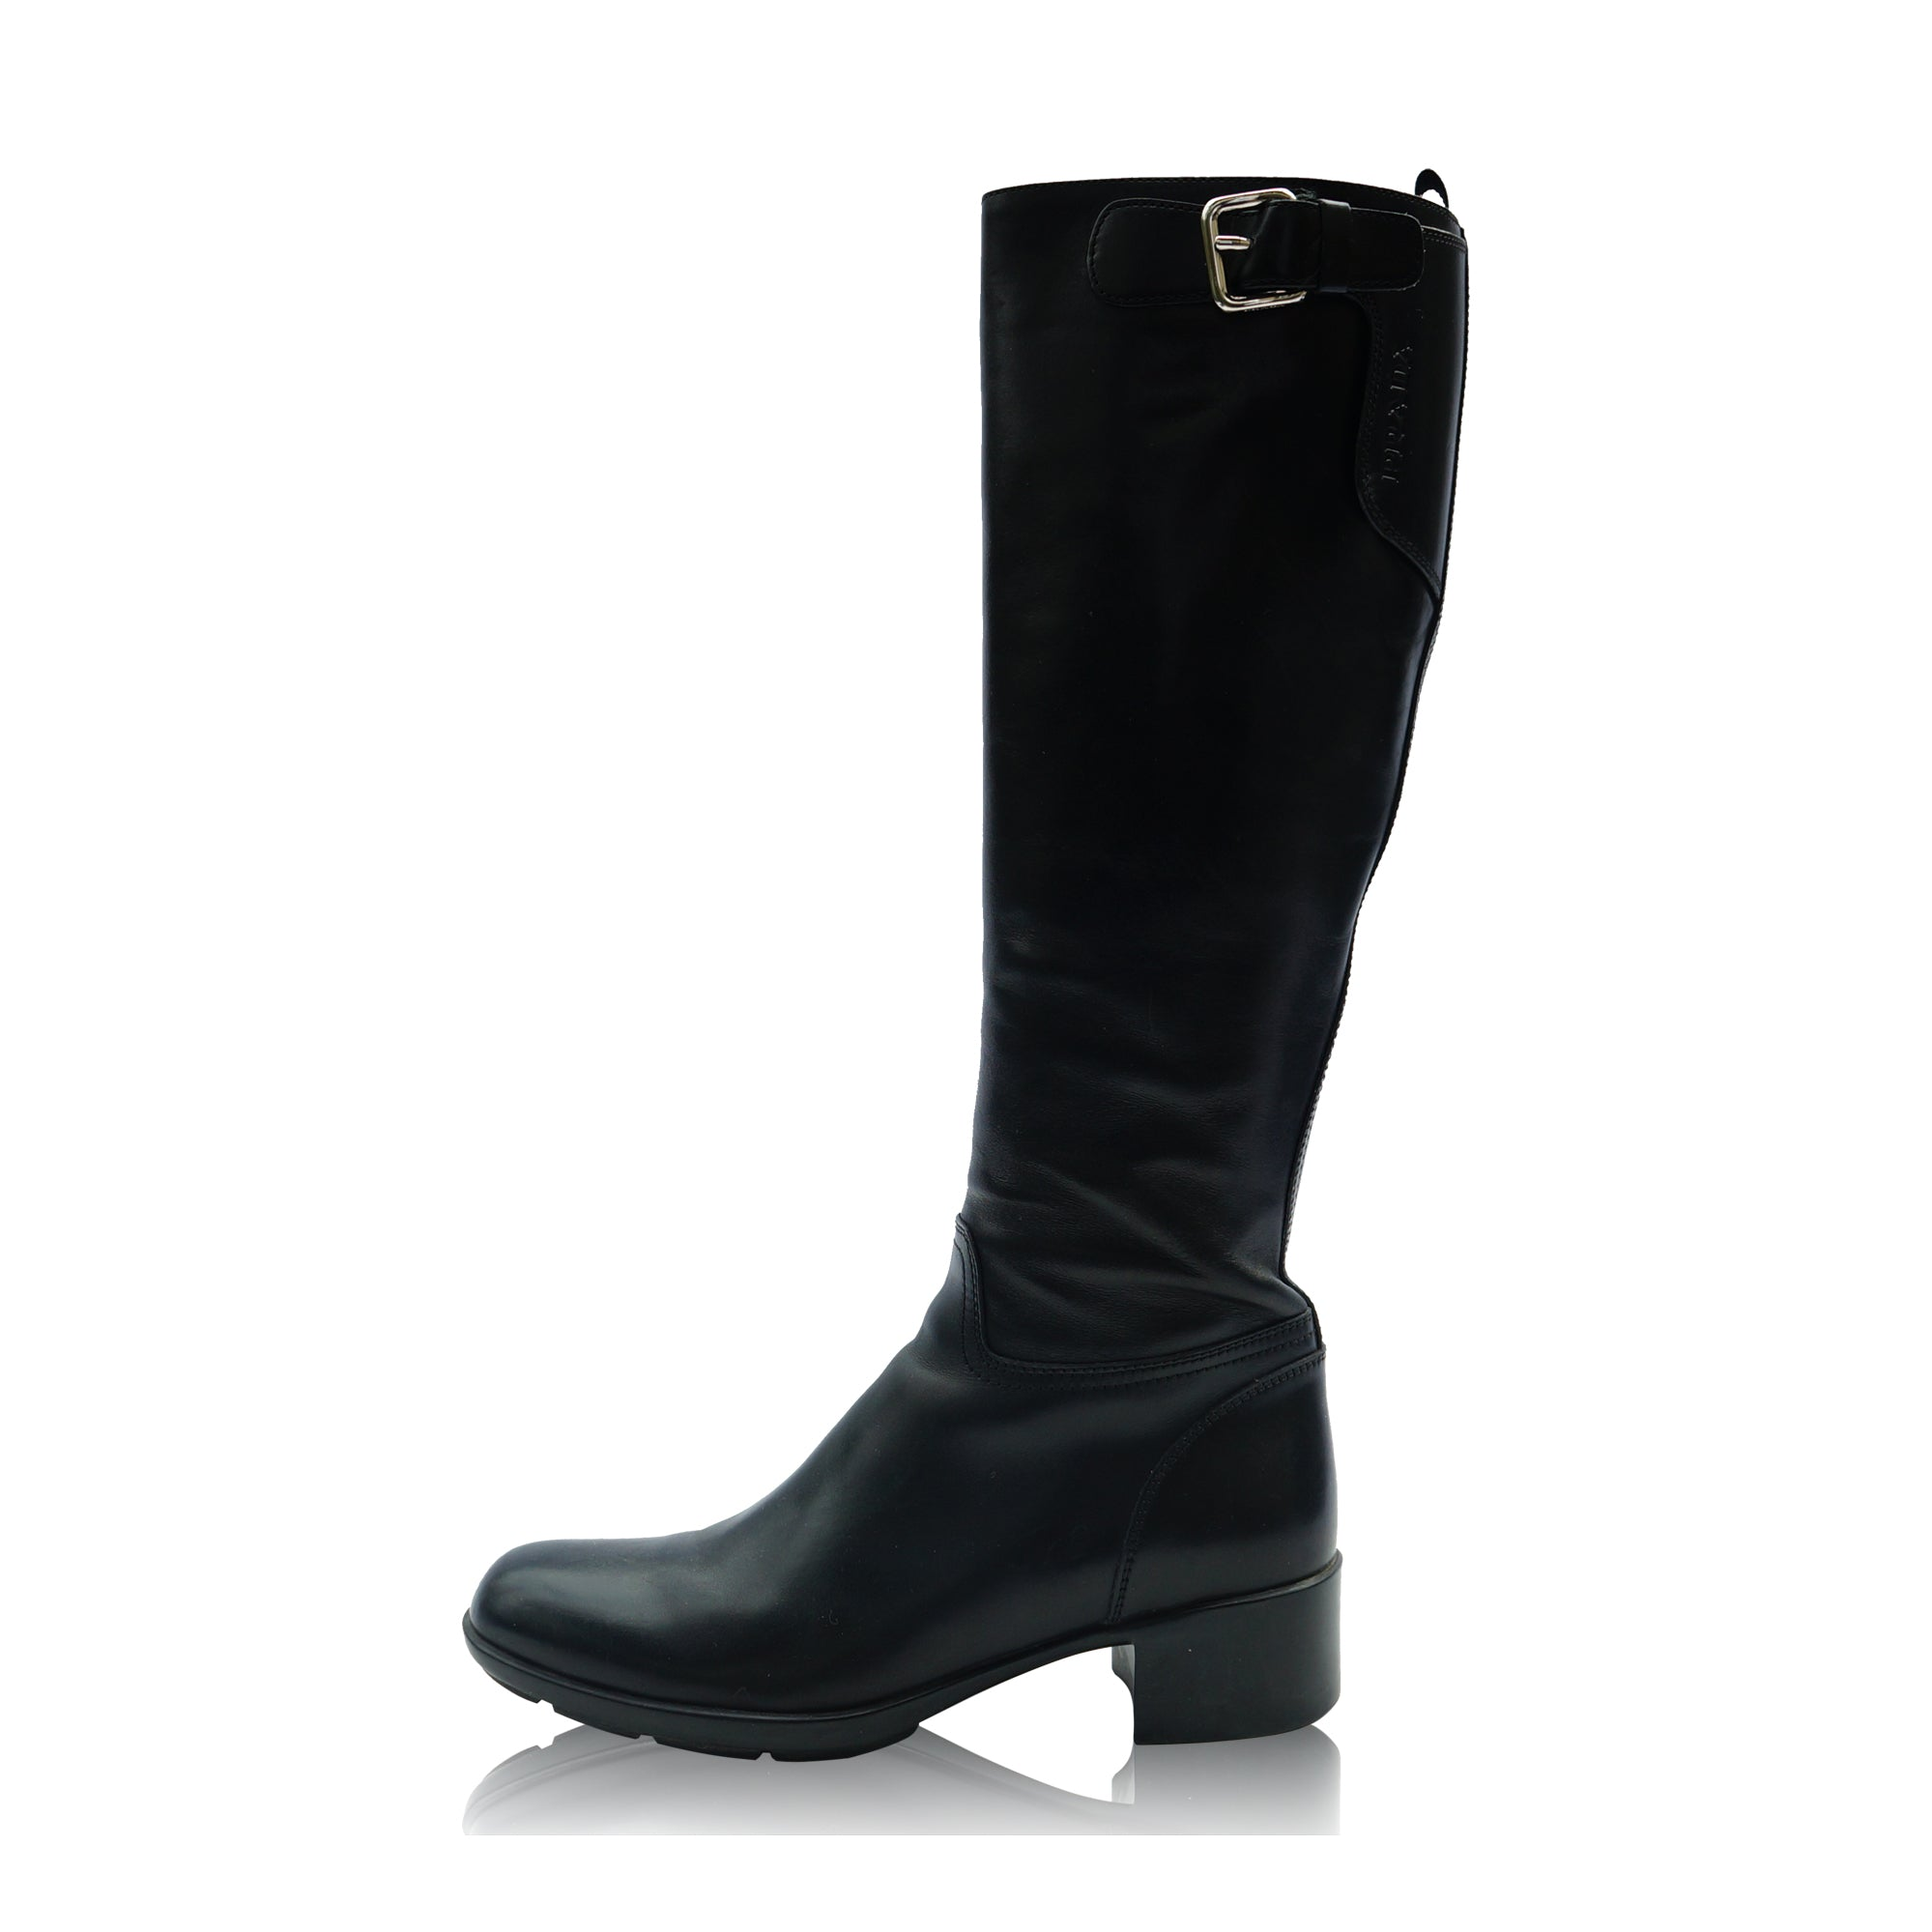 8ad9f9bb3 PRADA SPORT KNEE HIGH RIDING STYLE BOOT Shop online the best value on  authentic designer used ...